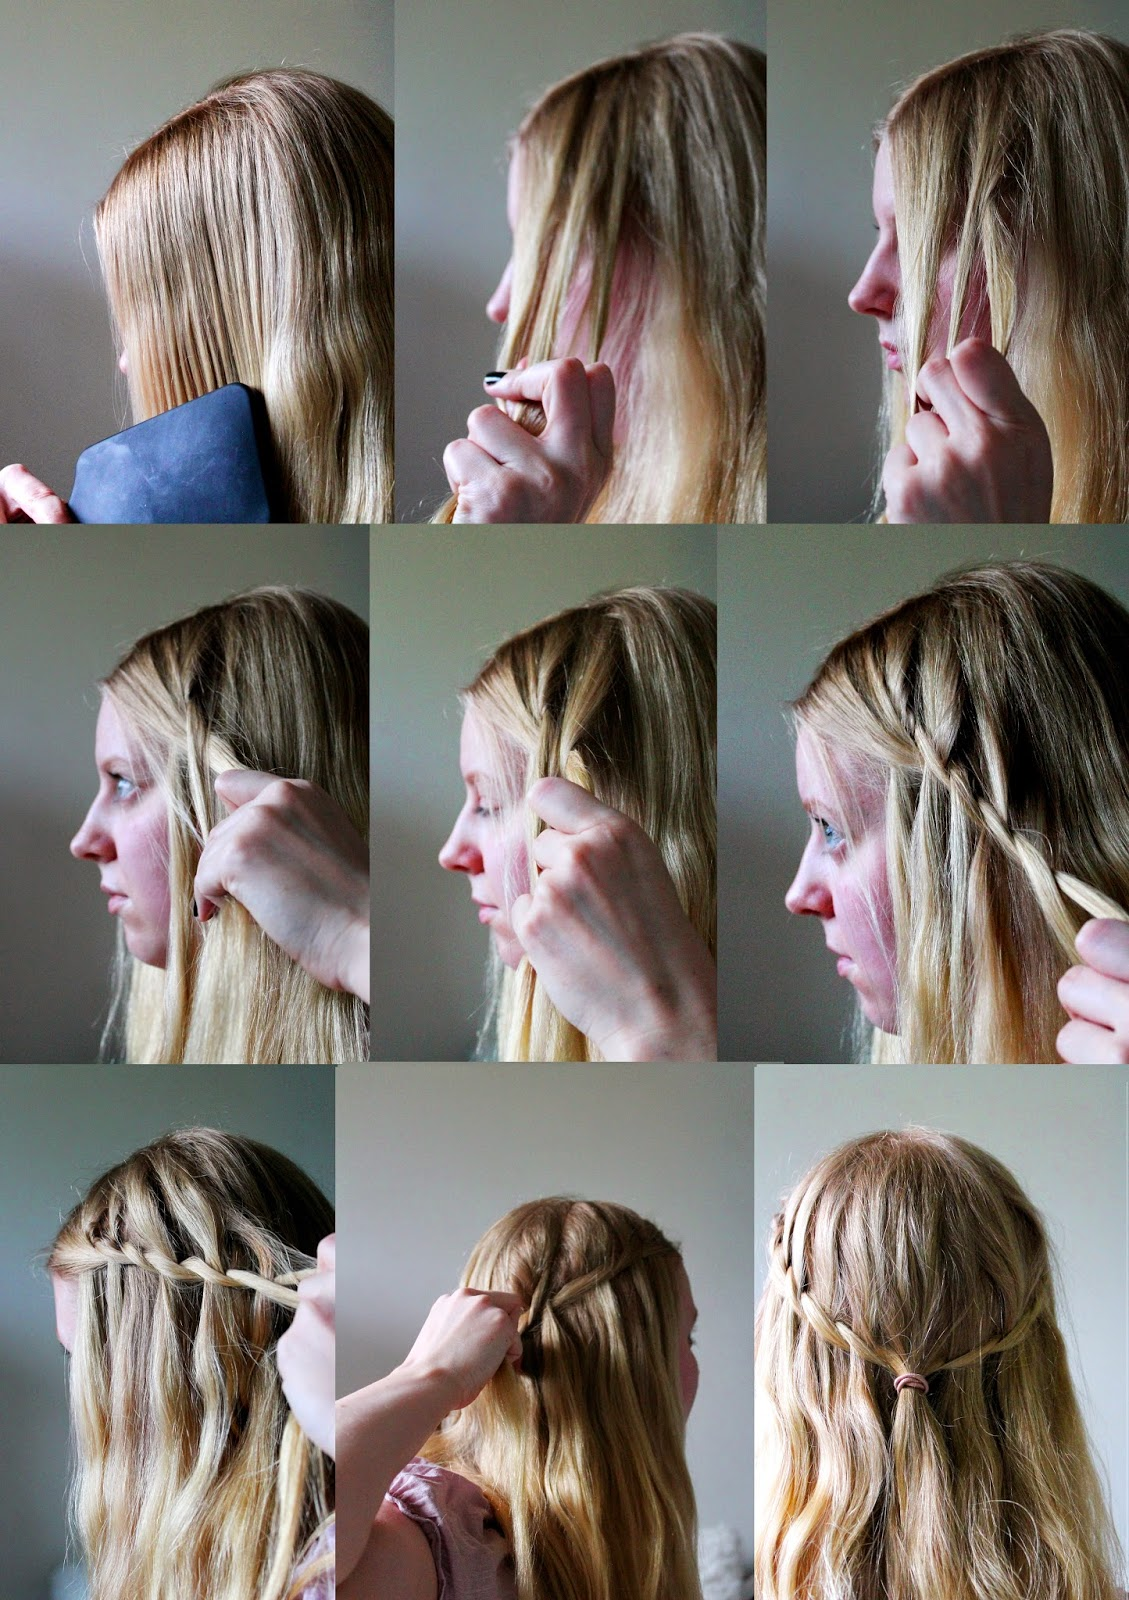 Waterfall braid how to | Alinan kotona blog